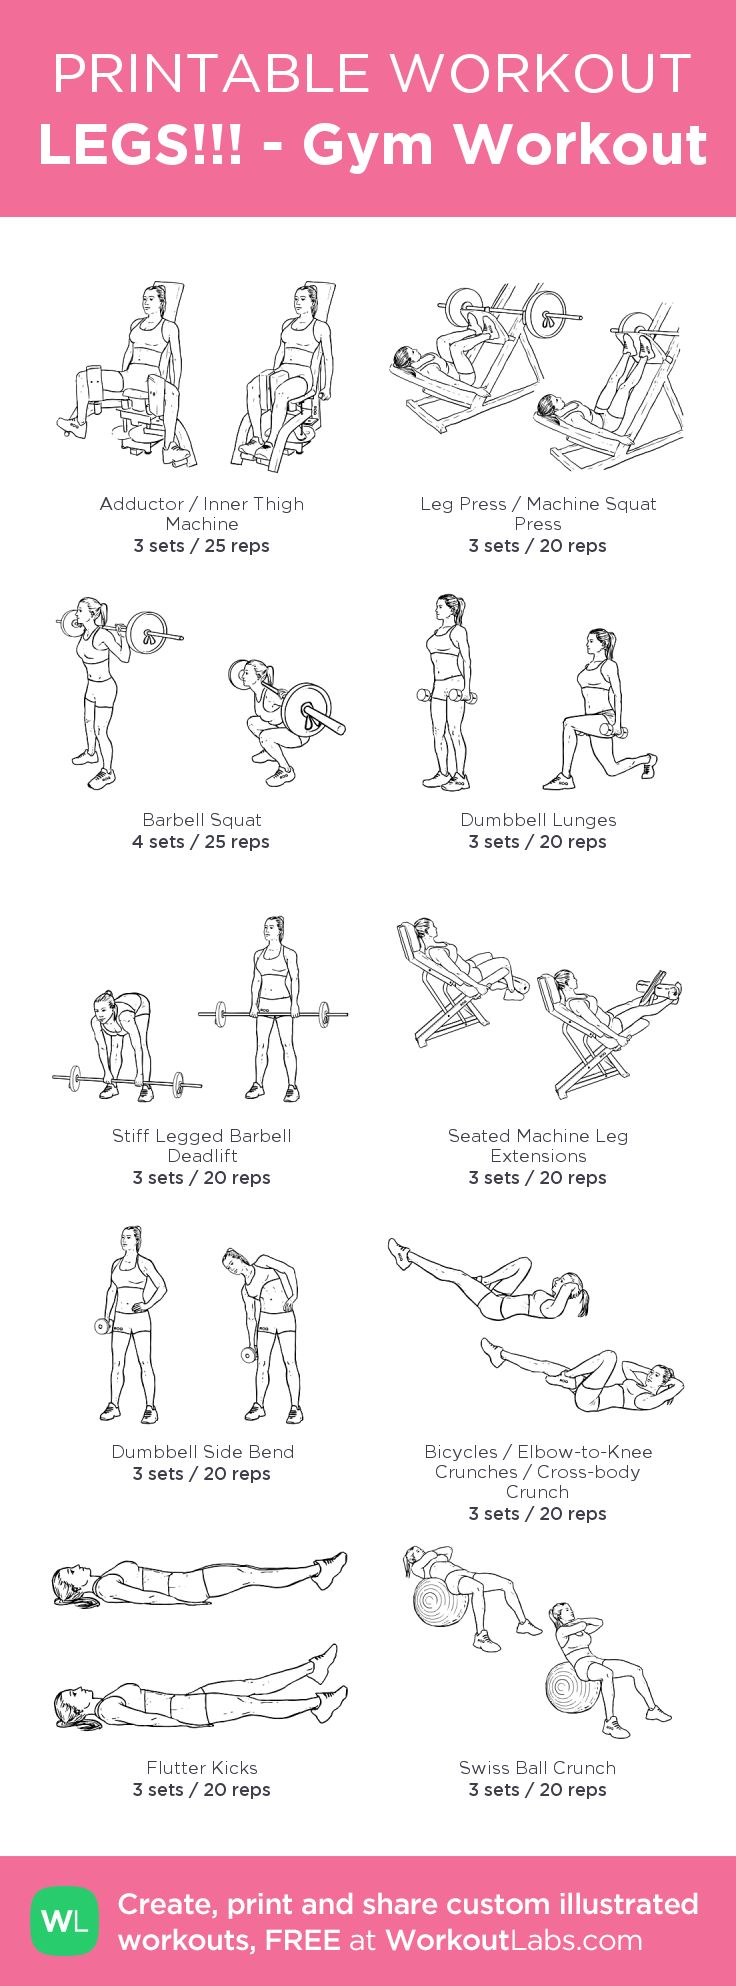 LEGS!!! - Gym Workout –my custom workout created at WorkoutLabs.com • Click through to download as printable PDF! #customworkout